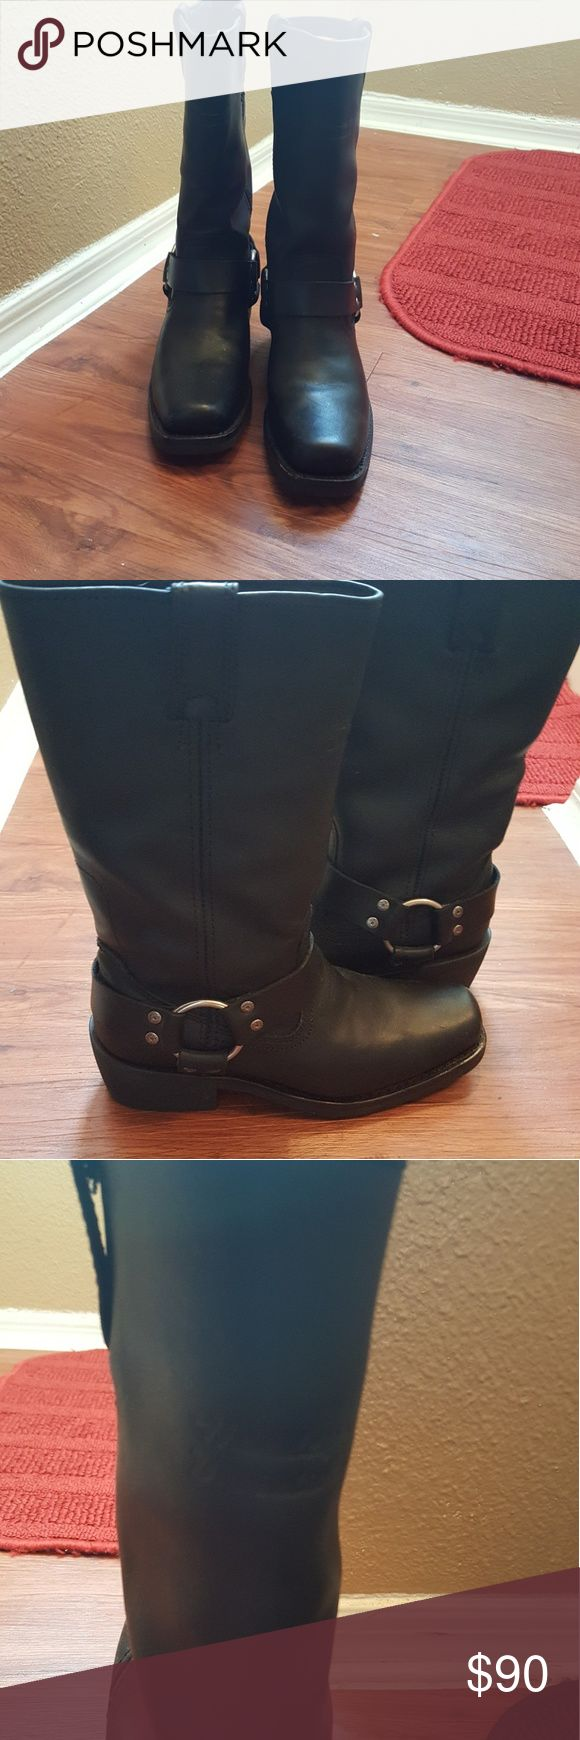 Brand New never worn Riding boots Riding Boots Harley-Davidson Shoes Ankle Boots & Booties #harleydavidsonboots